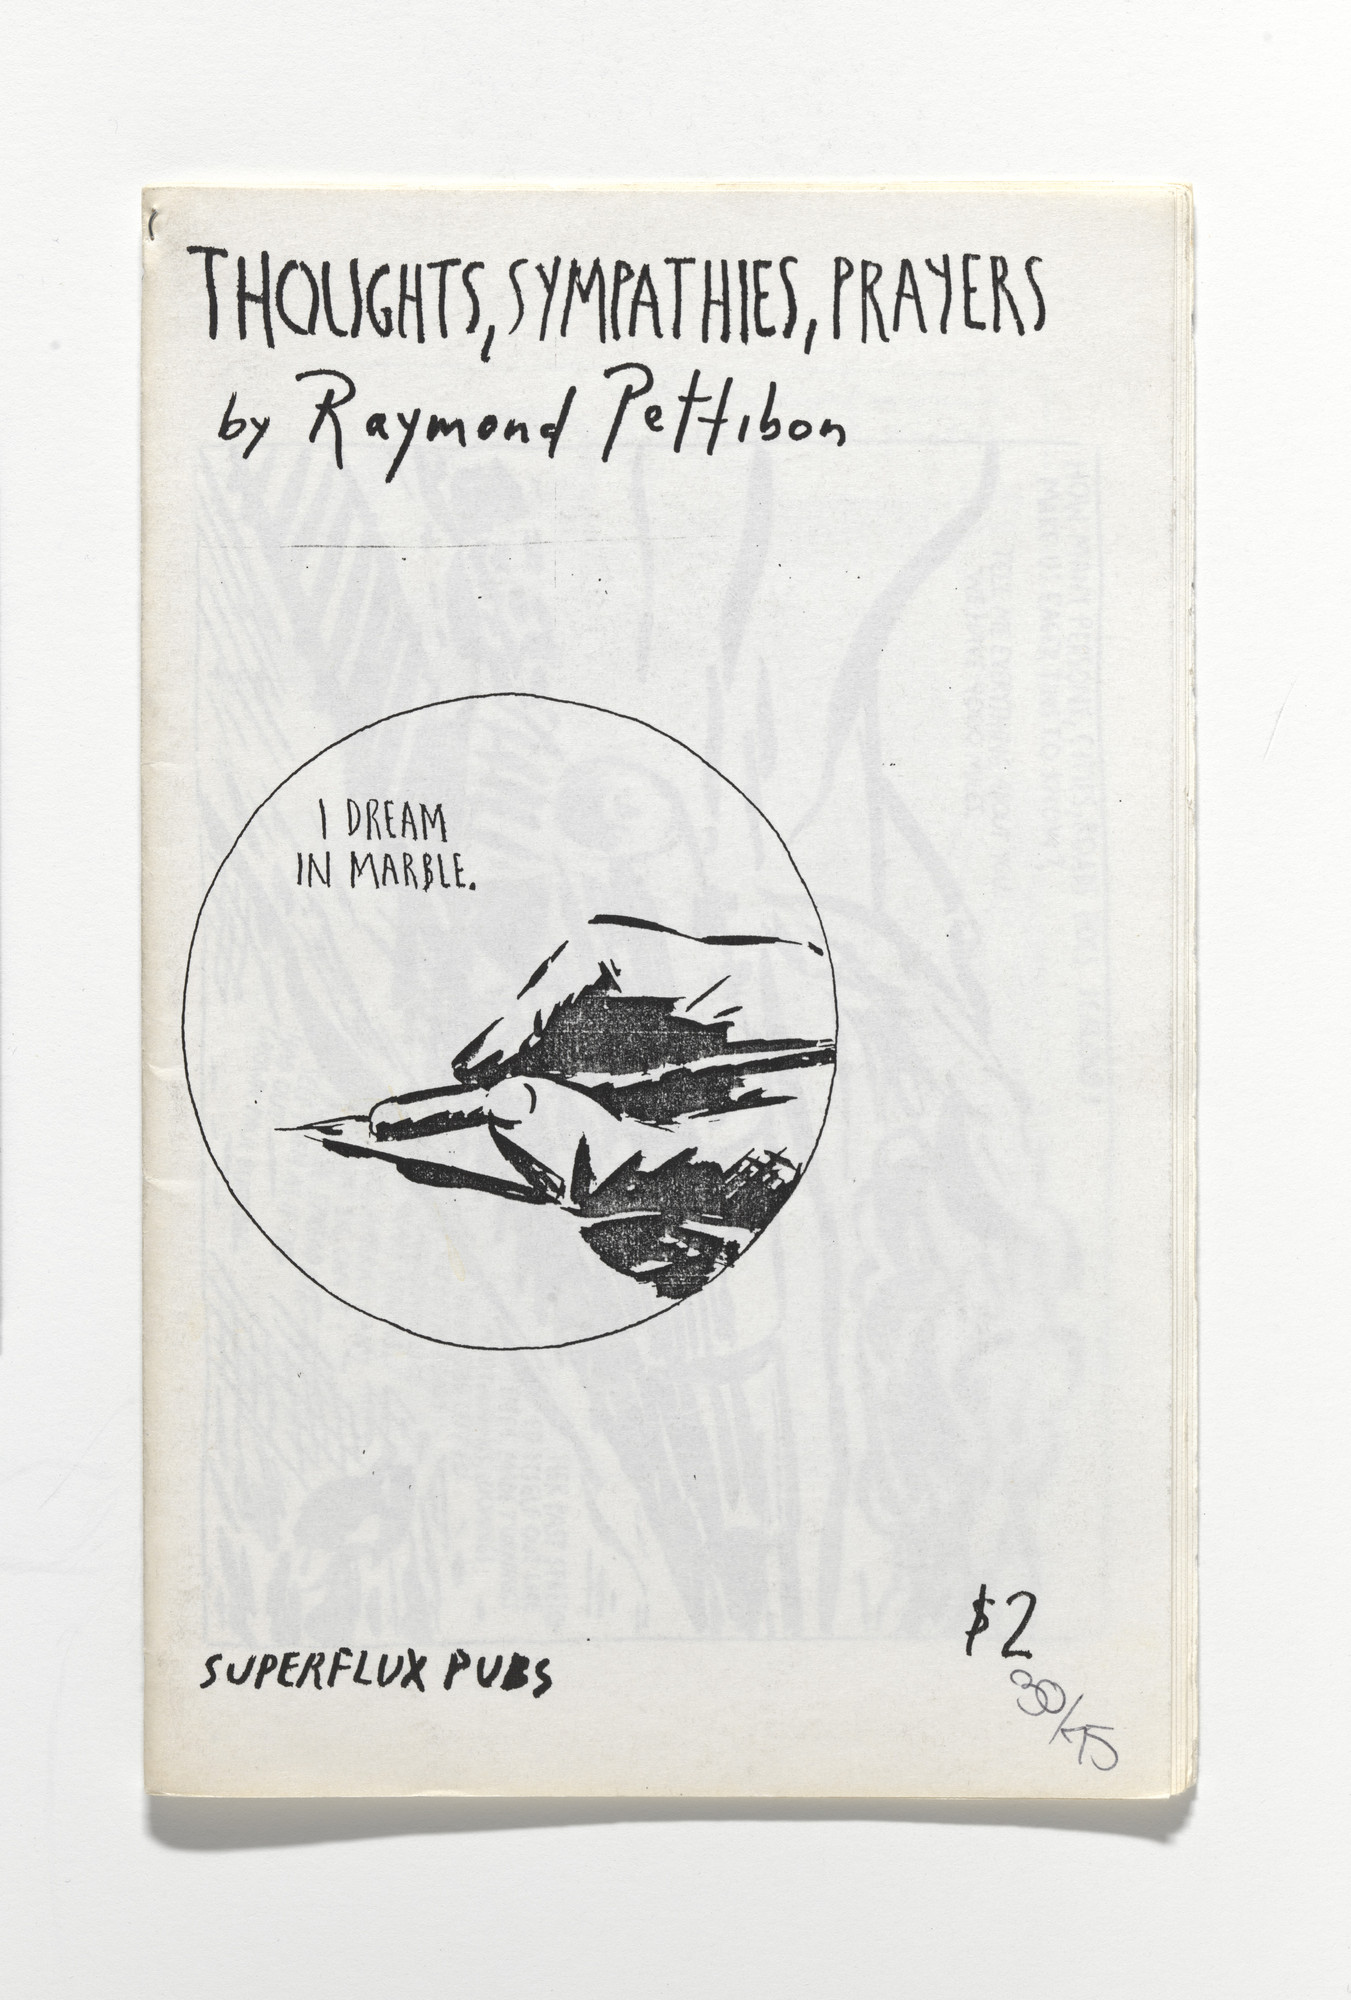 Raymond Pettibon. Thoughts, Sympathies, Prayers. 1991